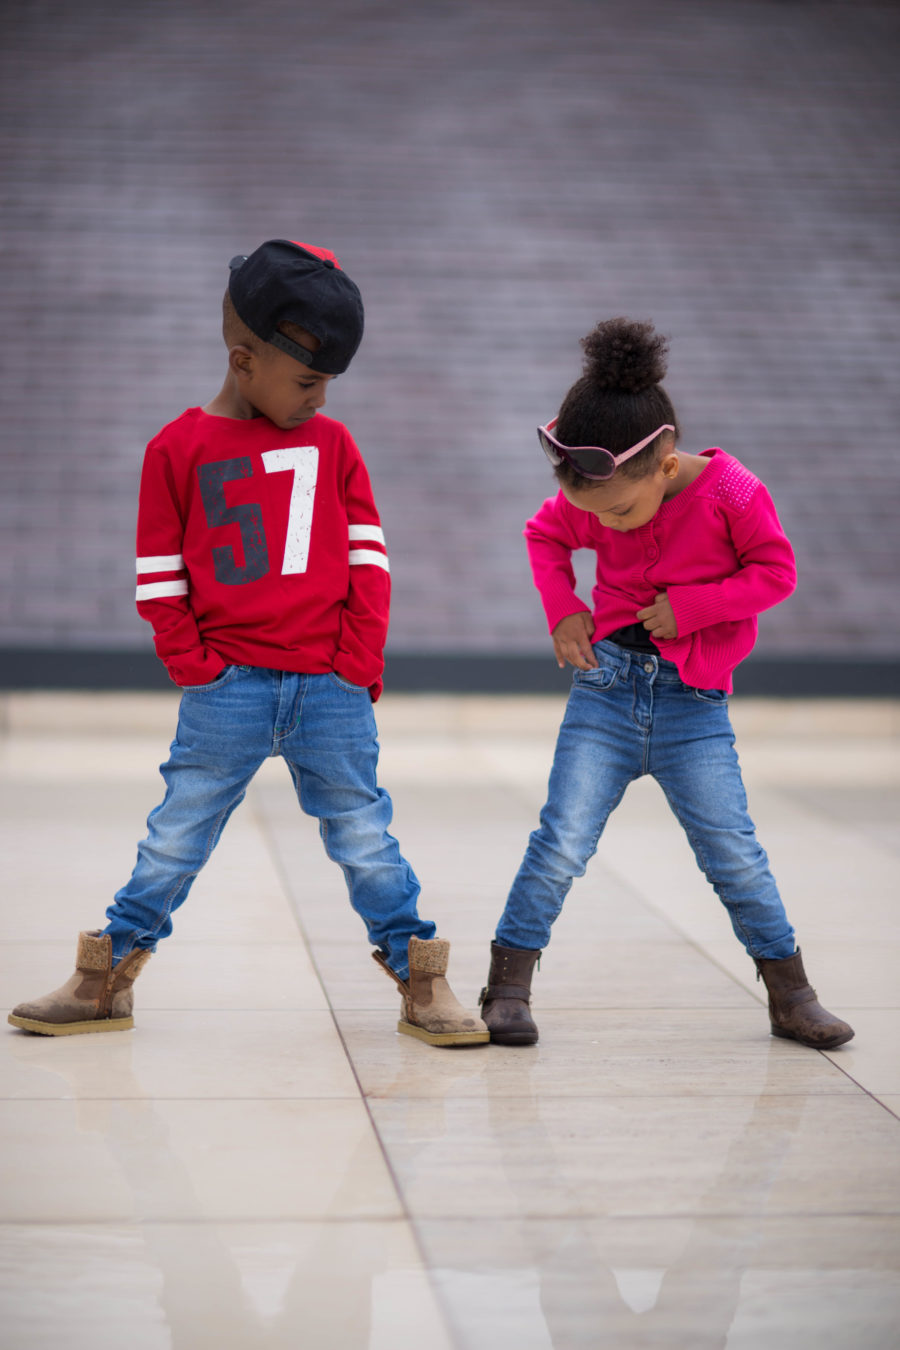 Lilmissbelle -Too cool for school